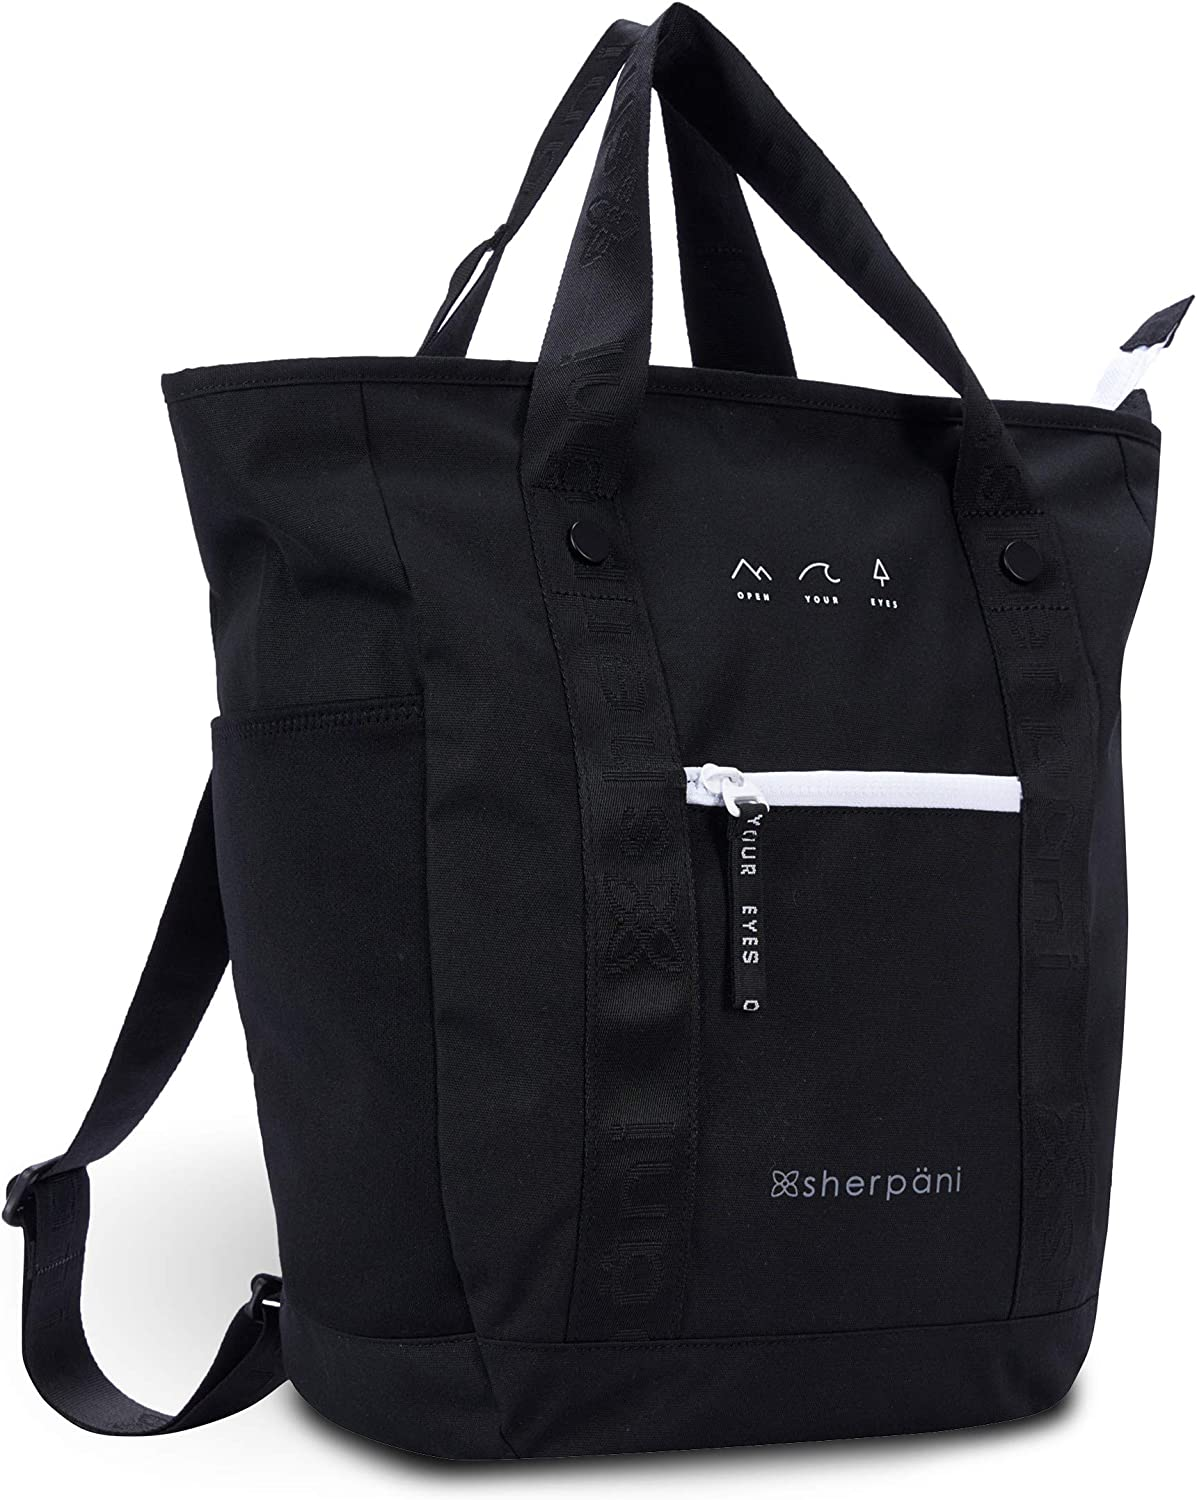 Sherpani Via, Convertible Backpack, Tote Bag with Coin Purse, Casual Daypack, Backpack Purse for Women Fits 13 Inch Laptop (Black)